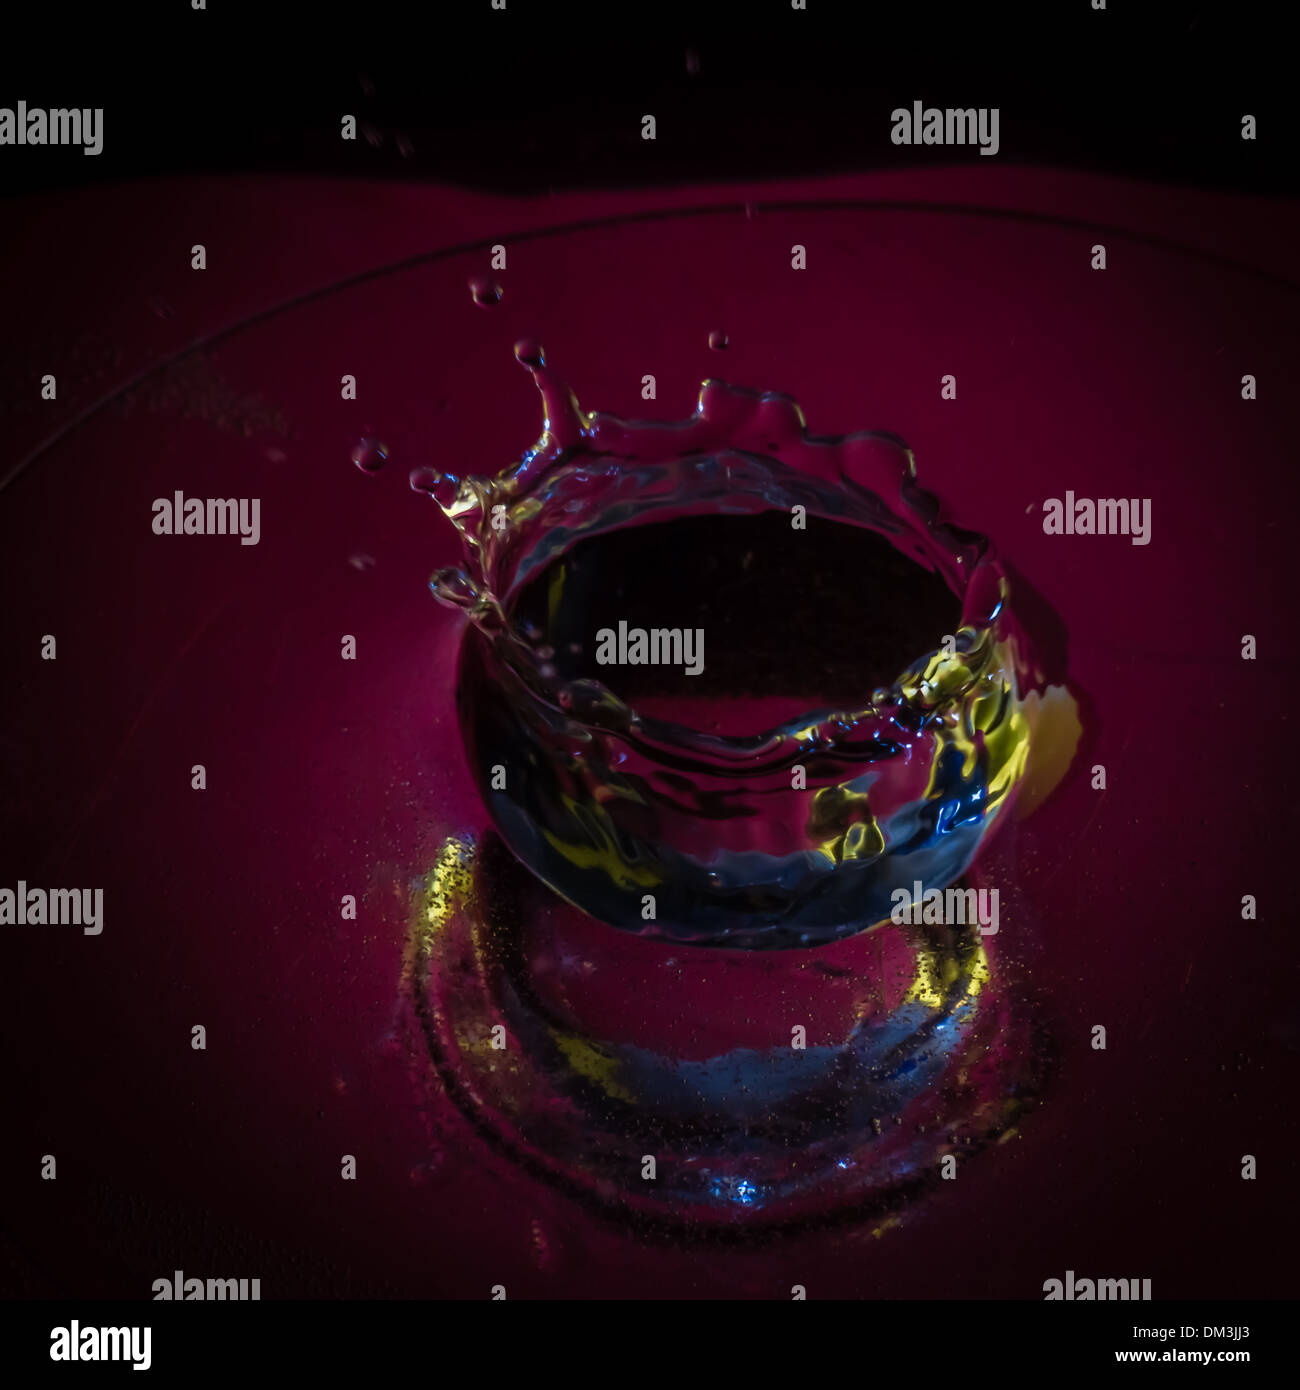 Festive water droplet splash in the shape of a crown - Stock Image